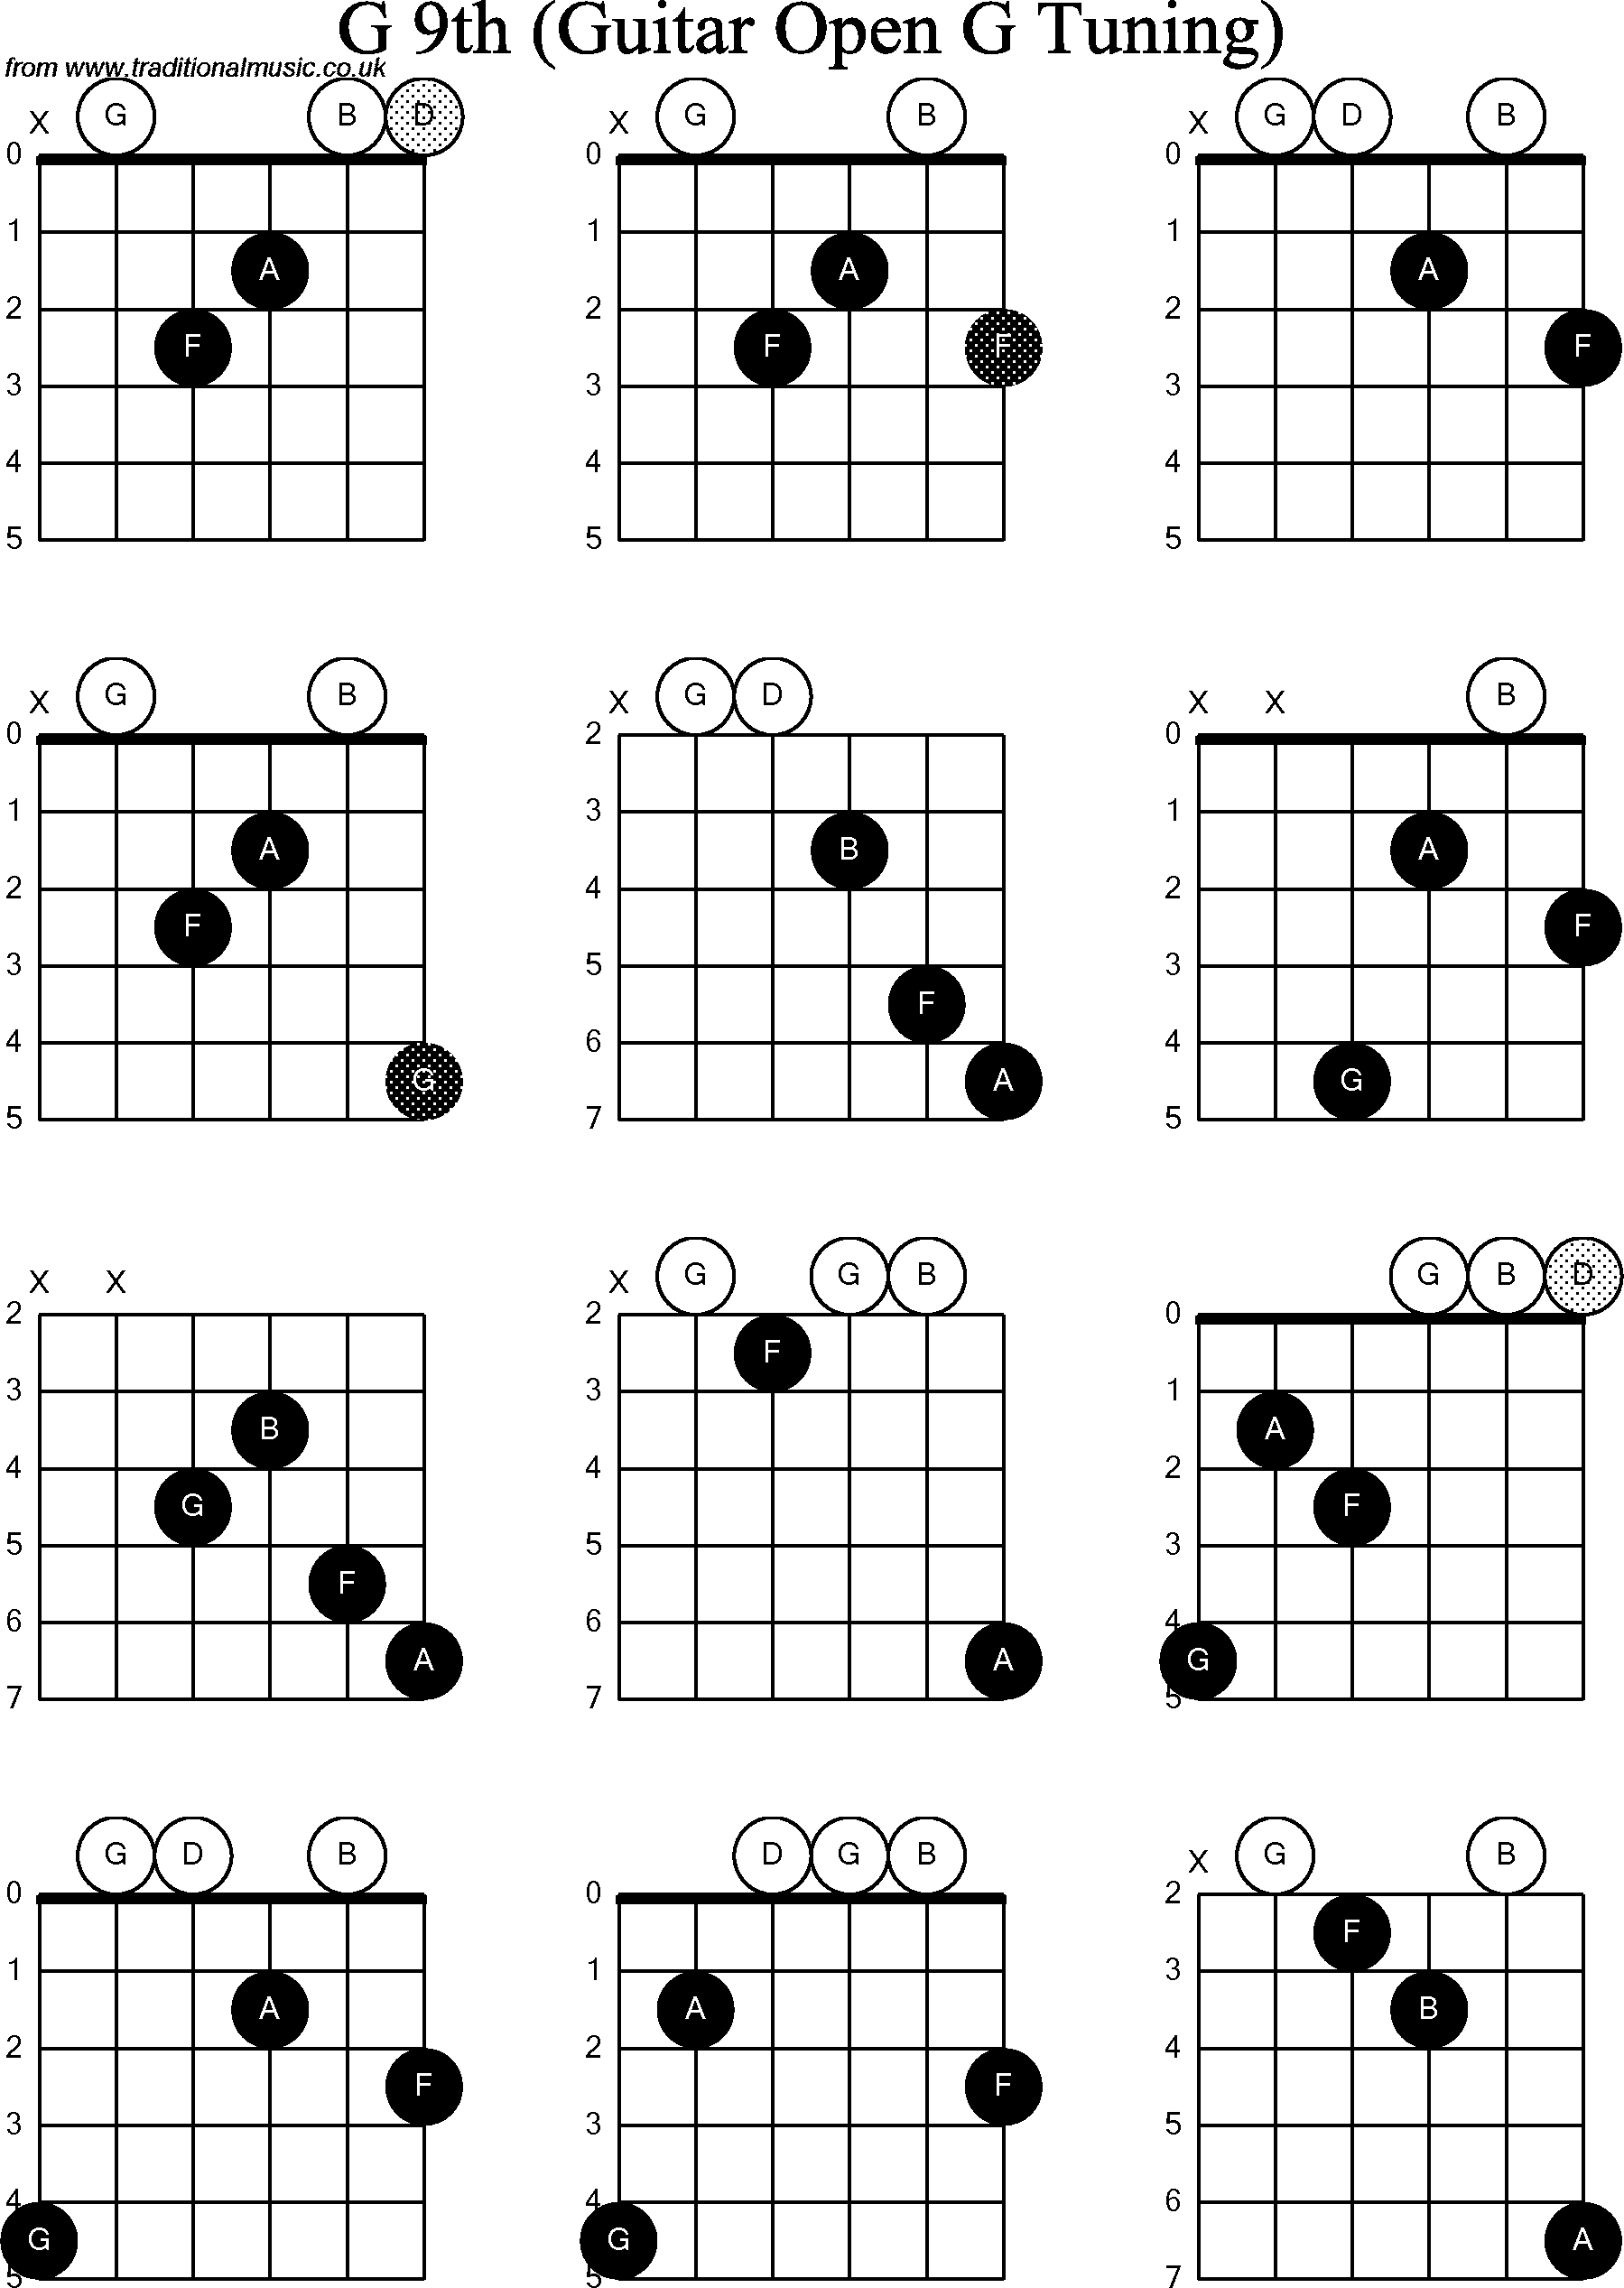 Banjo chord chart open g tuning chord diagrams for dobro bb chord diagrams for dobro g9th hexwebz Choice Image